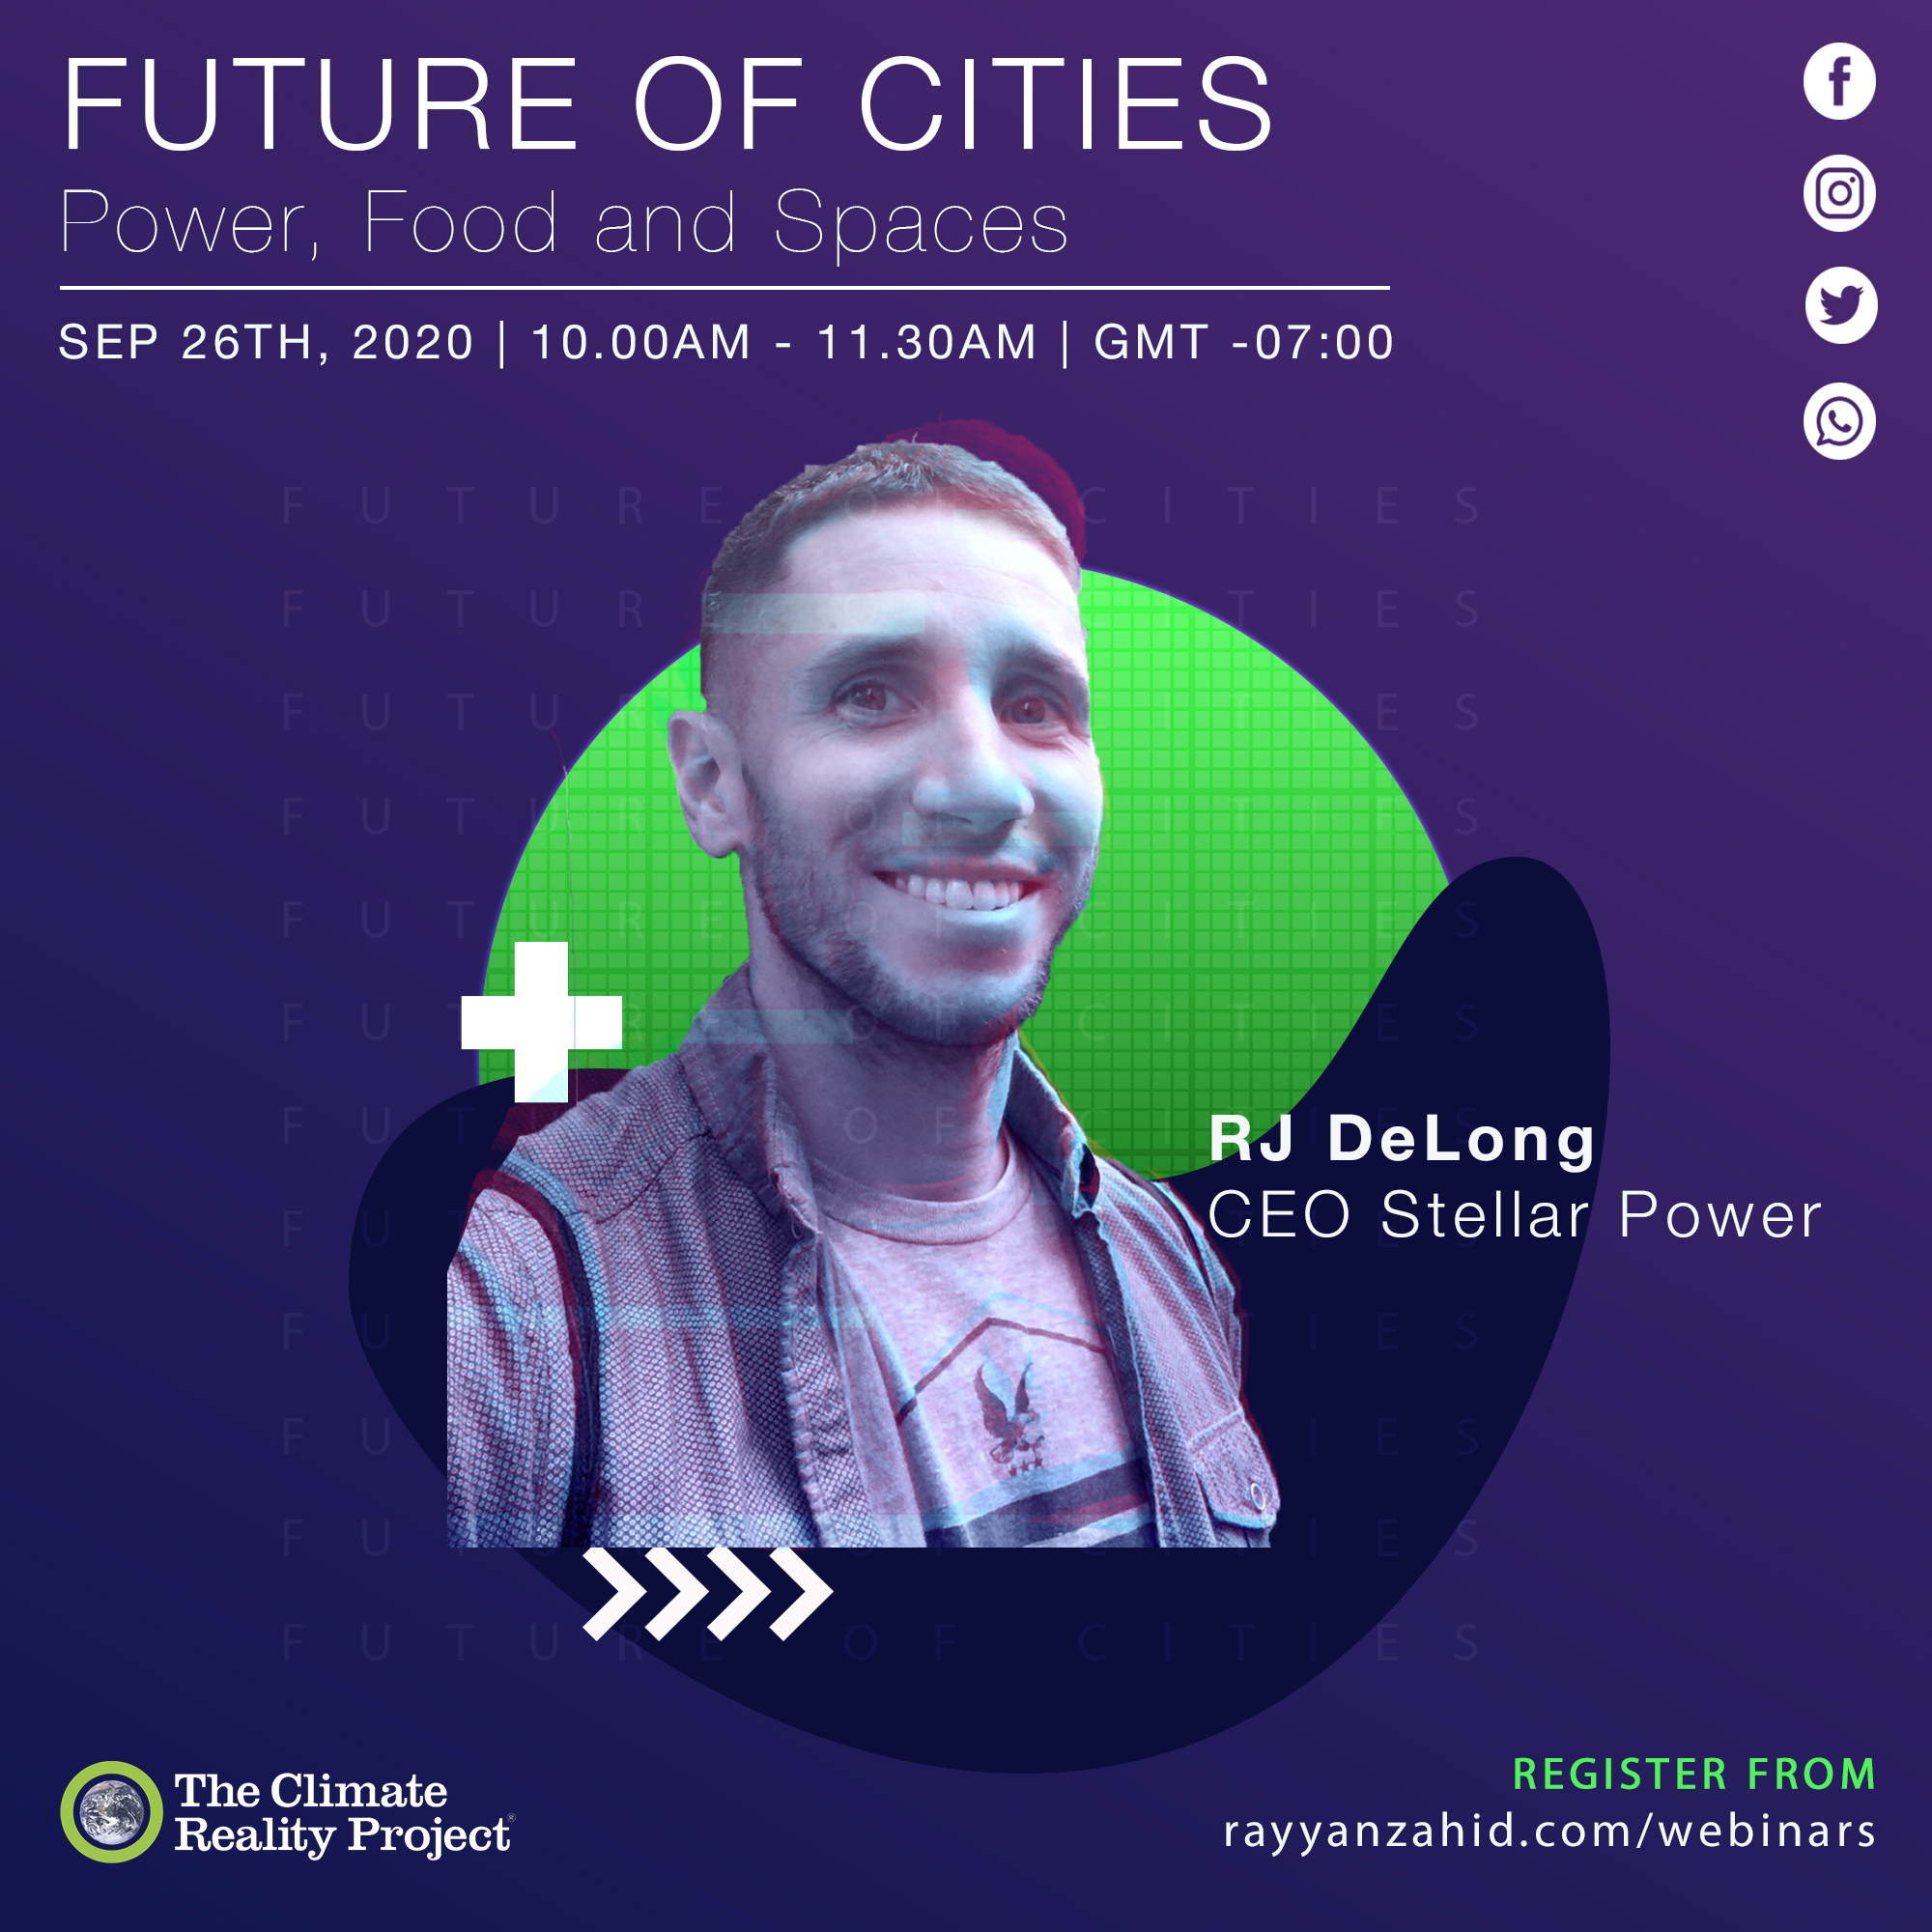 RJ DeLong Poster for Future of Cities